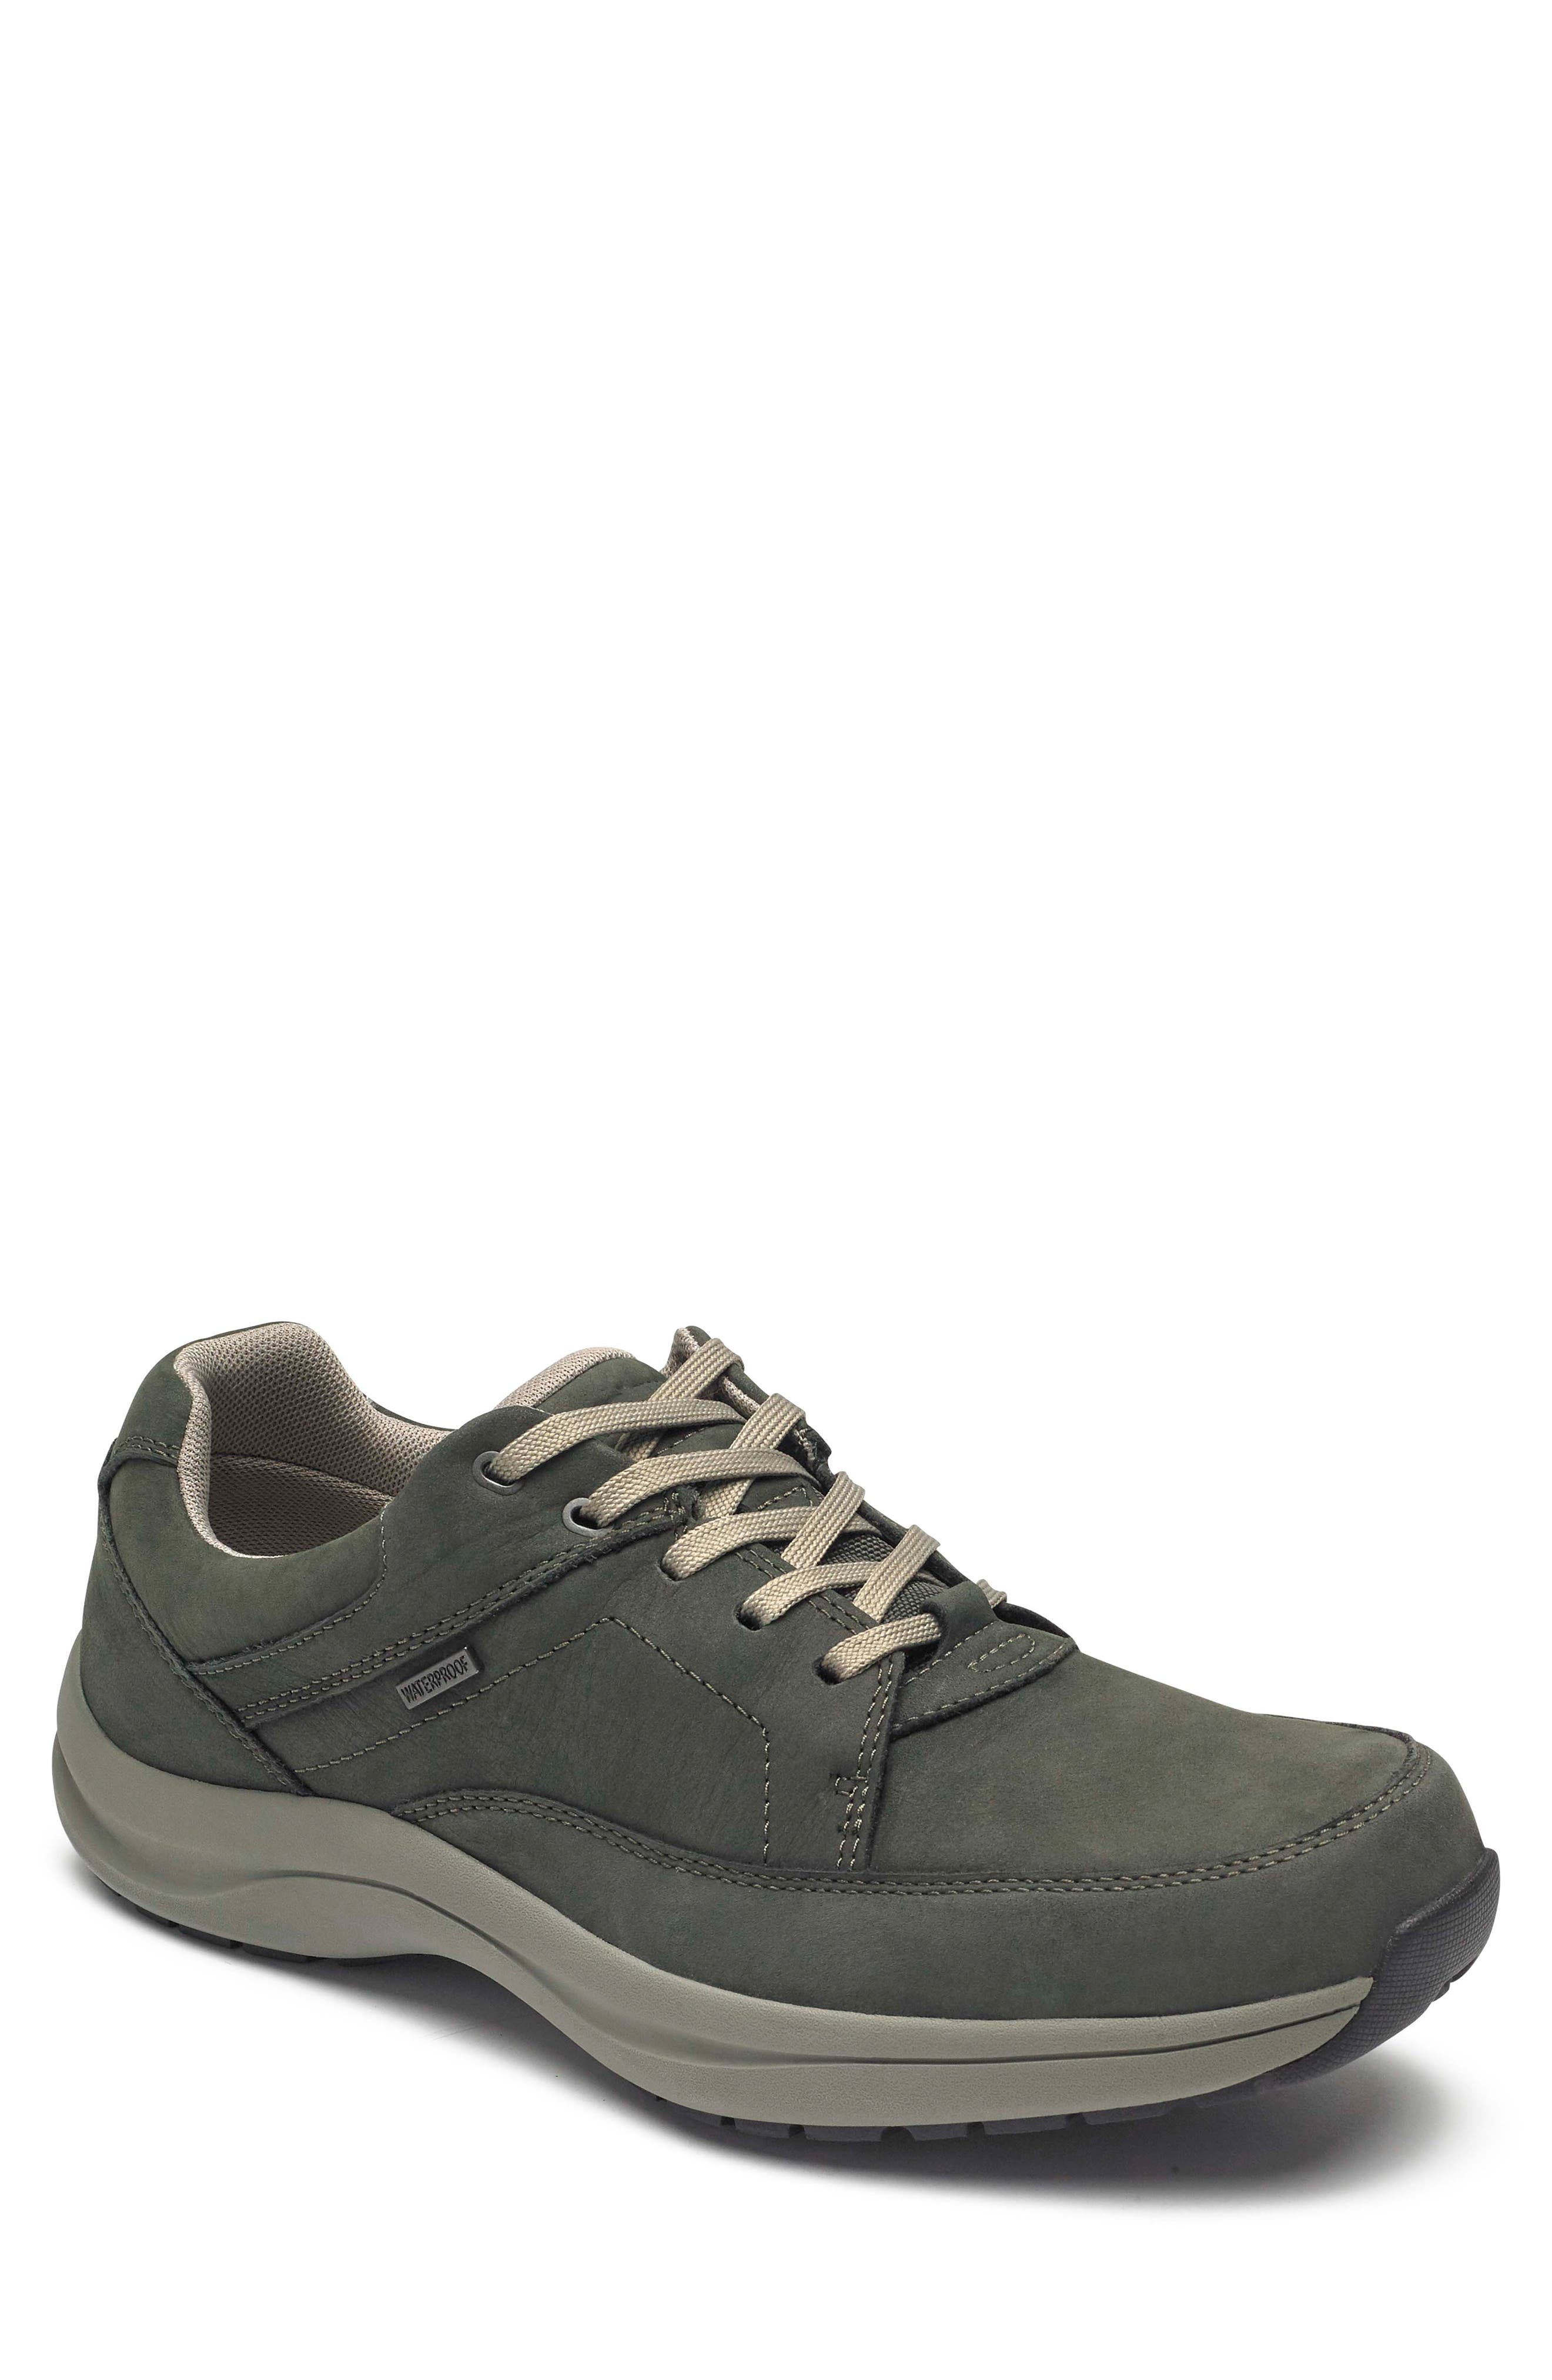 DUNHAM Stephen-DUN Waterproof Derby, Main, color, GREEN LEATHER